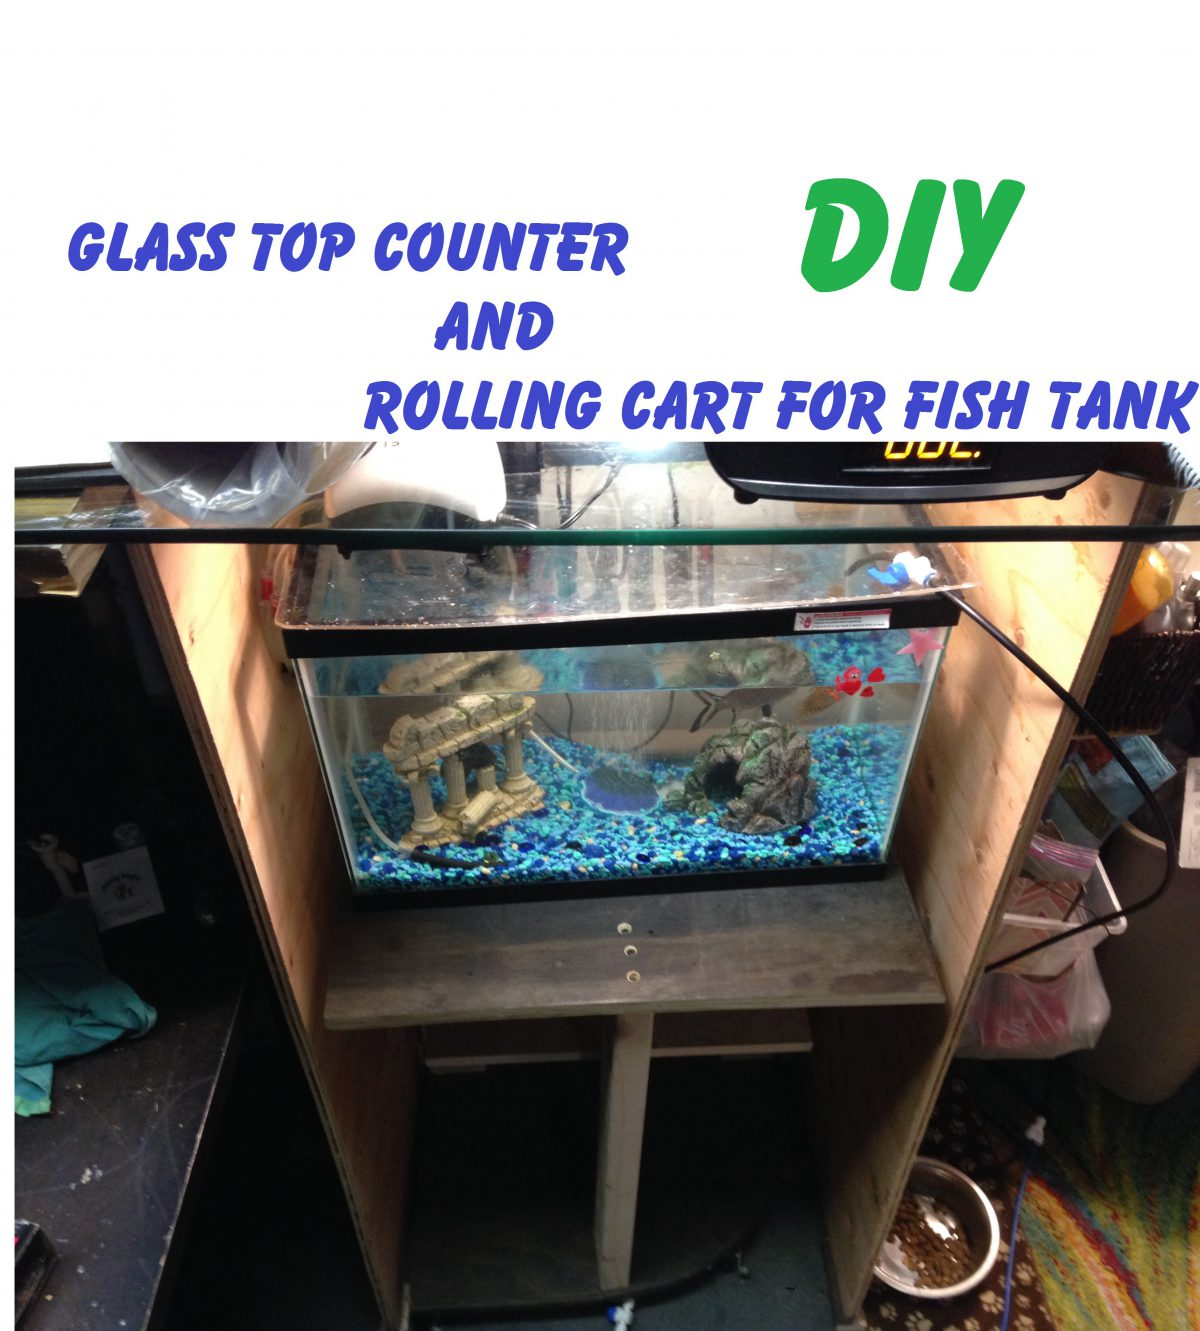 Glass top counter and rolling cart for fish tank stand